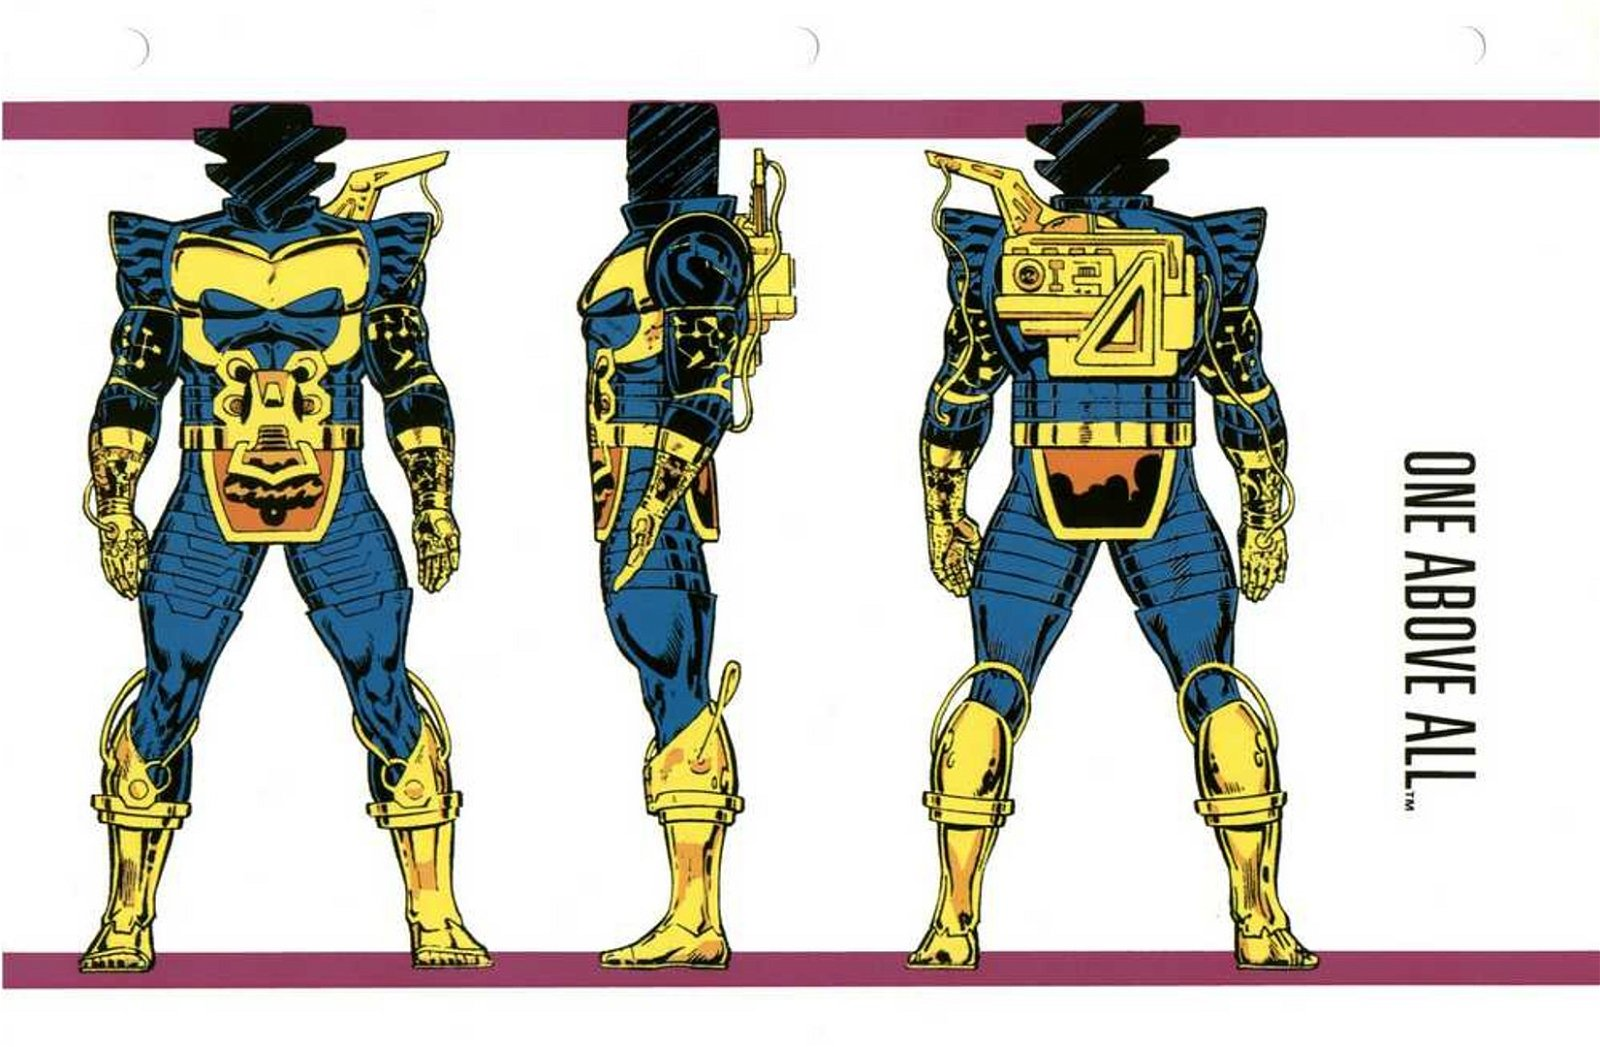 1630149768_63_15-Strongest-Celestials-In-The-Marvel-Universe-RANKED